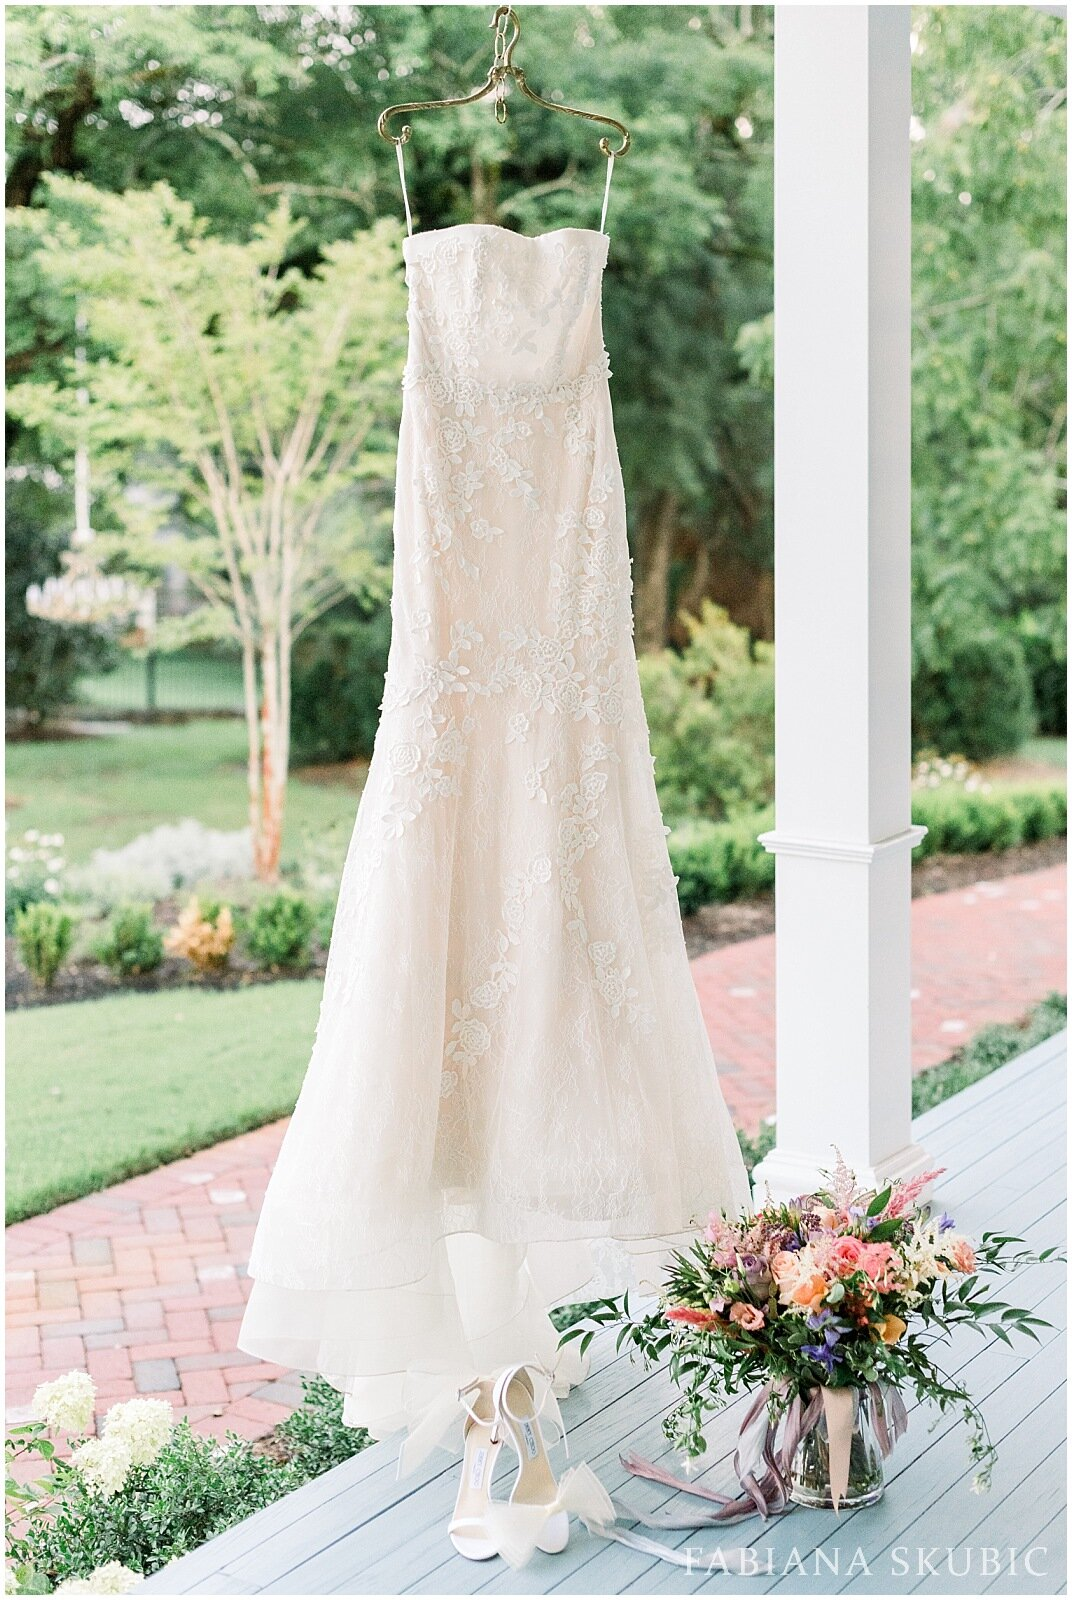 Raleigh-Wedding-Photographer-Fabiana-Skubic (6).jpg